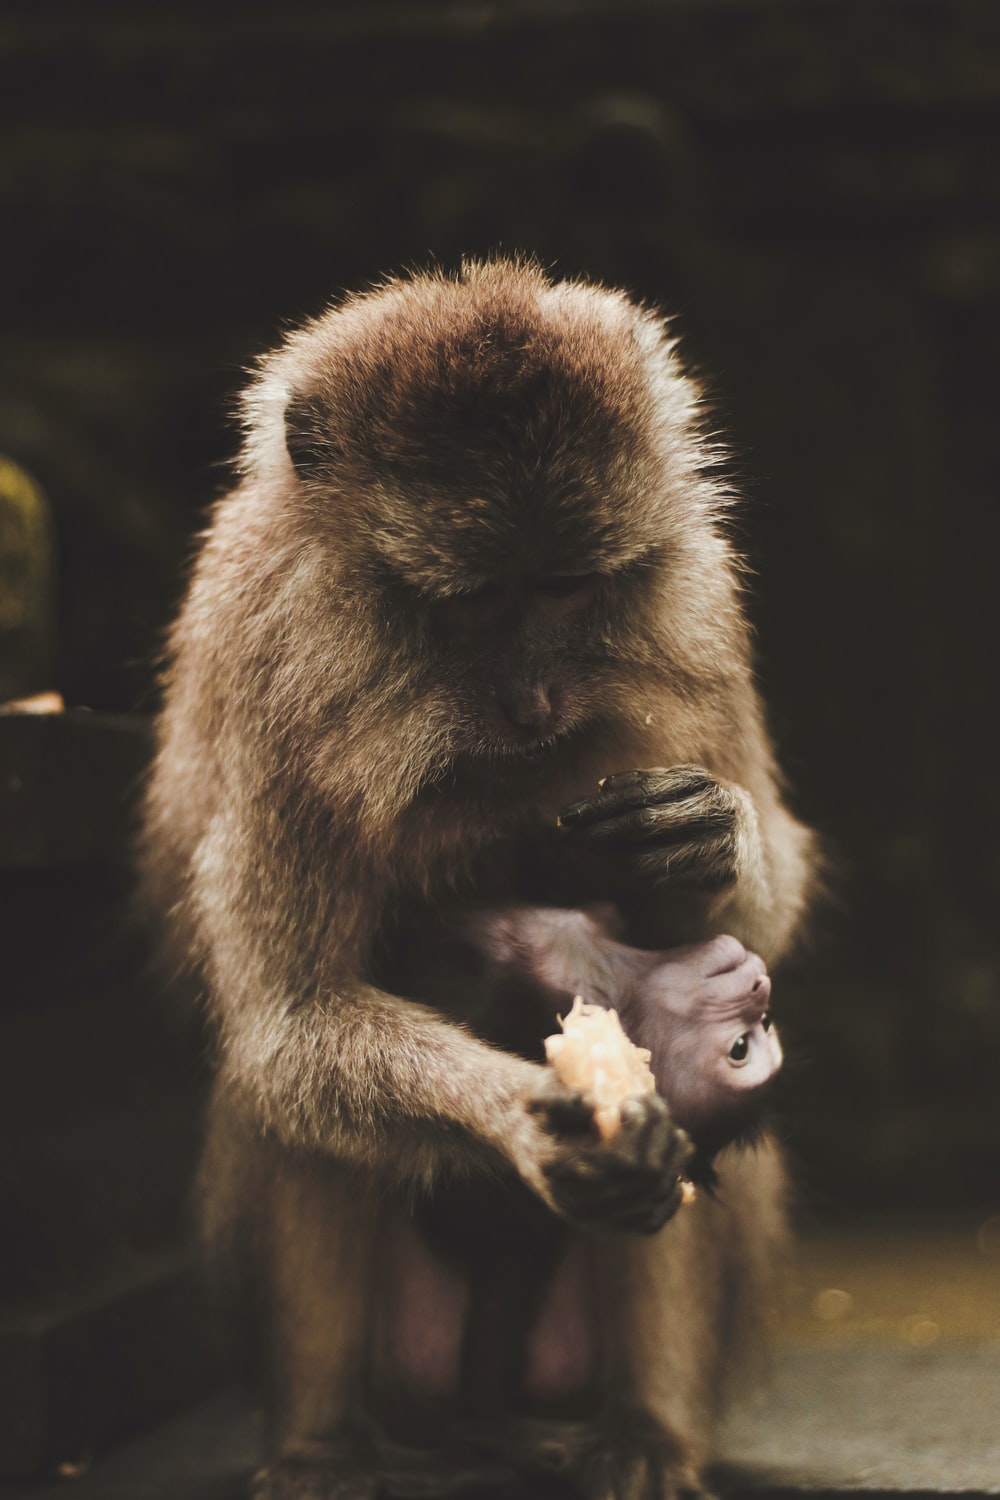 monkey holding food